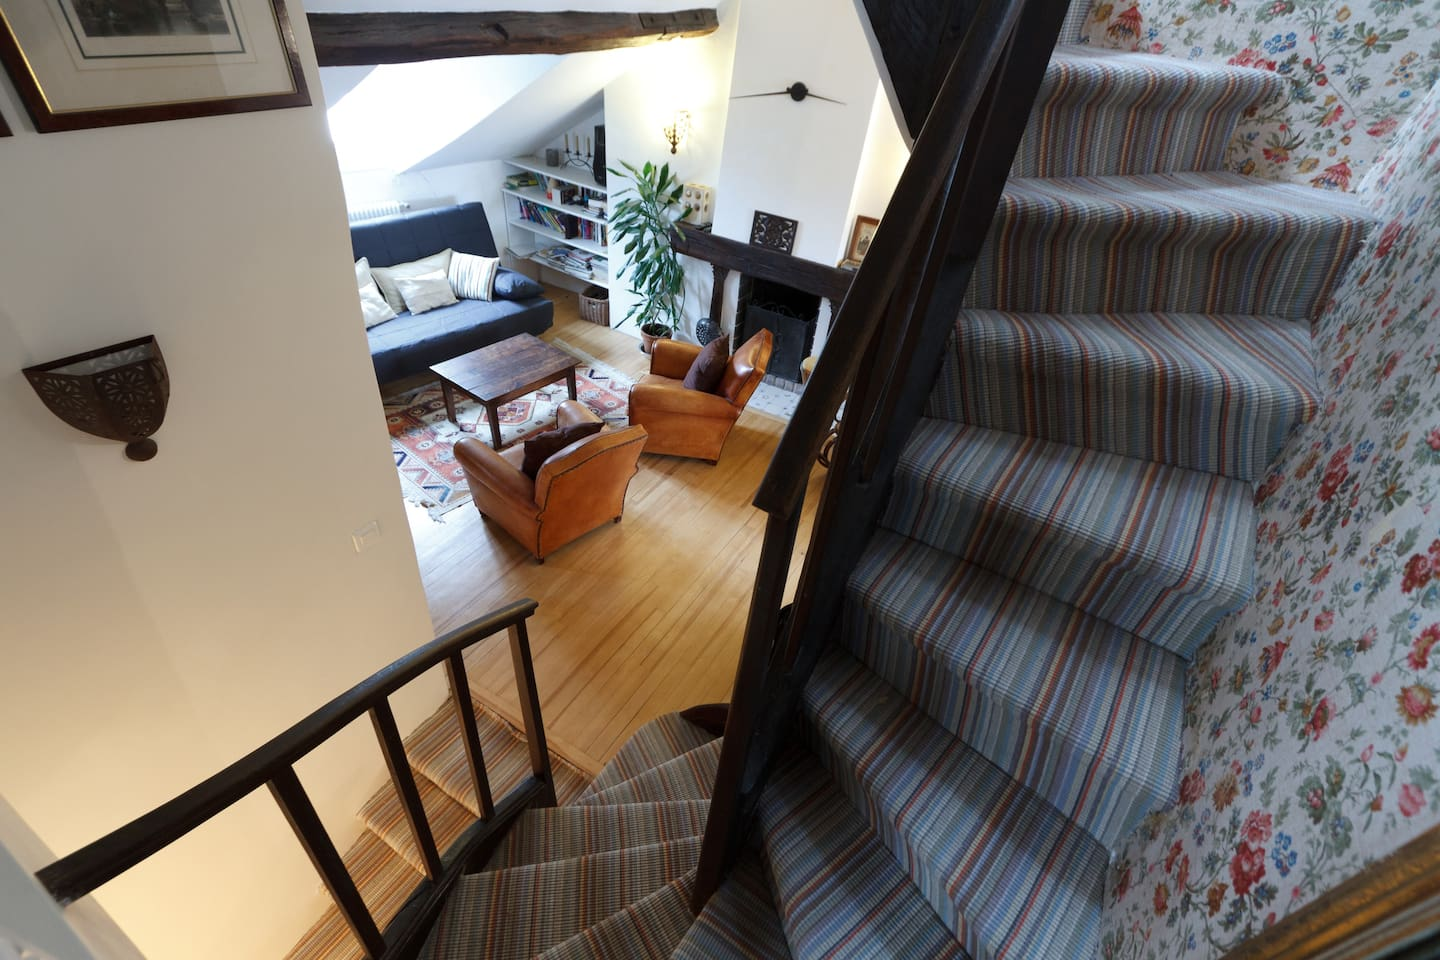 The view of the main room from the stairs to the turret